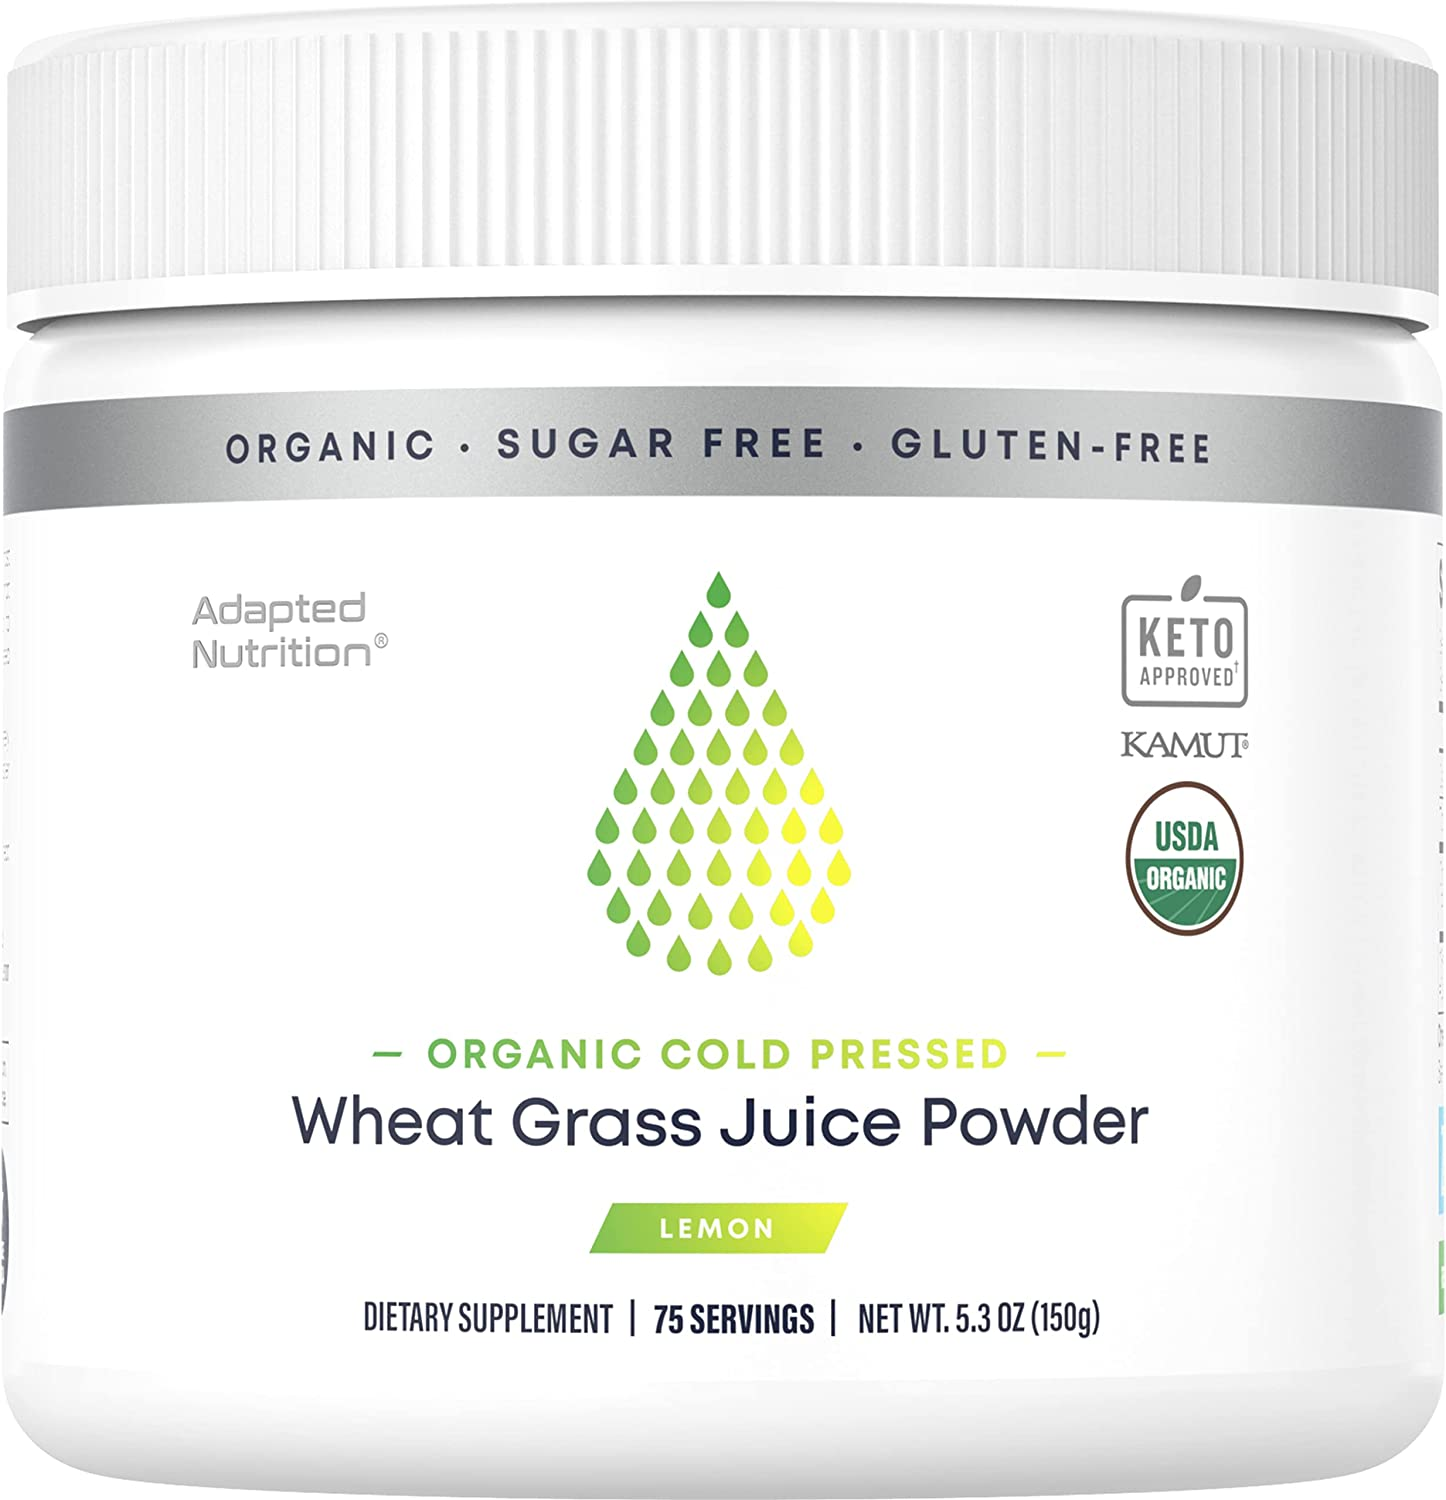 Organic Cold Pressed Wheat Grass Juice Powder With Kamut | Boost Your Energy, Promotes Detox & Immune Support | Rich in Chlorophyll & Trace Minerals | No Maltodextrin or Sugar | Delicious Lemon Flavor